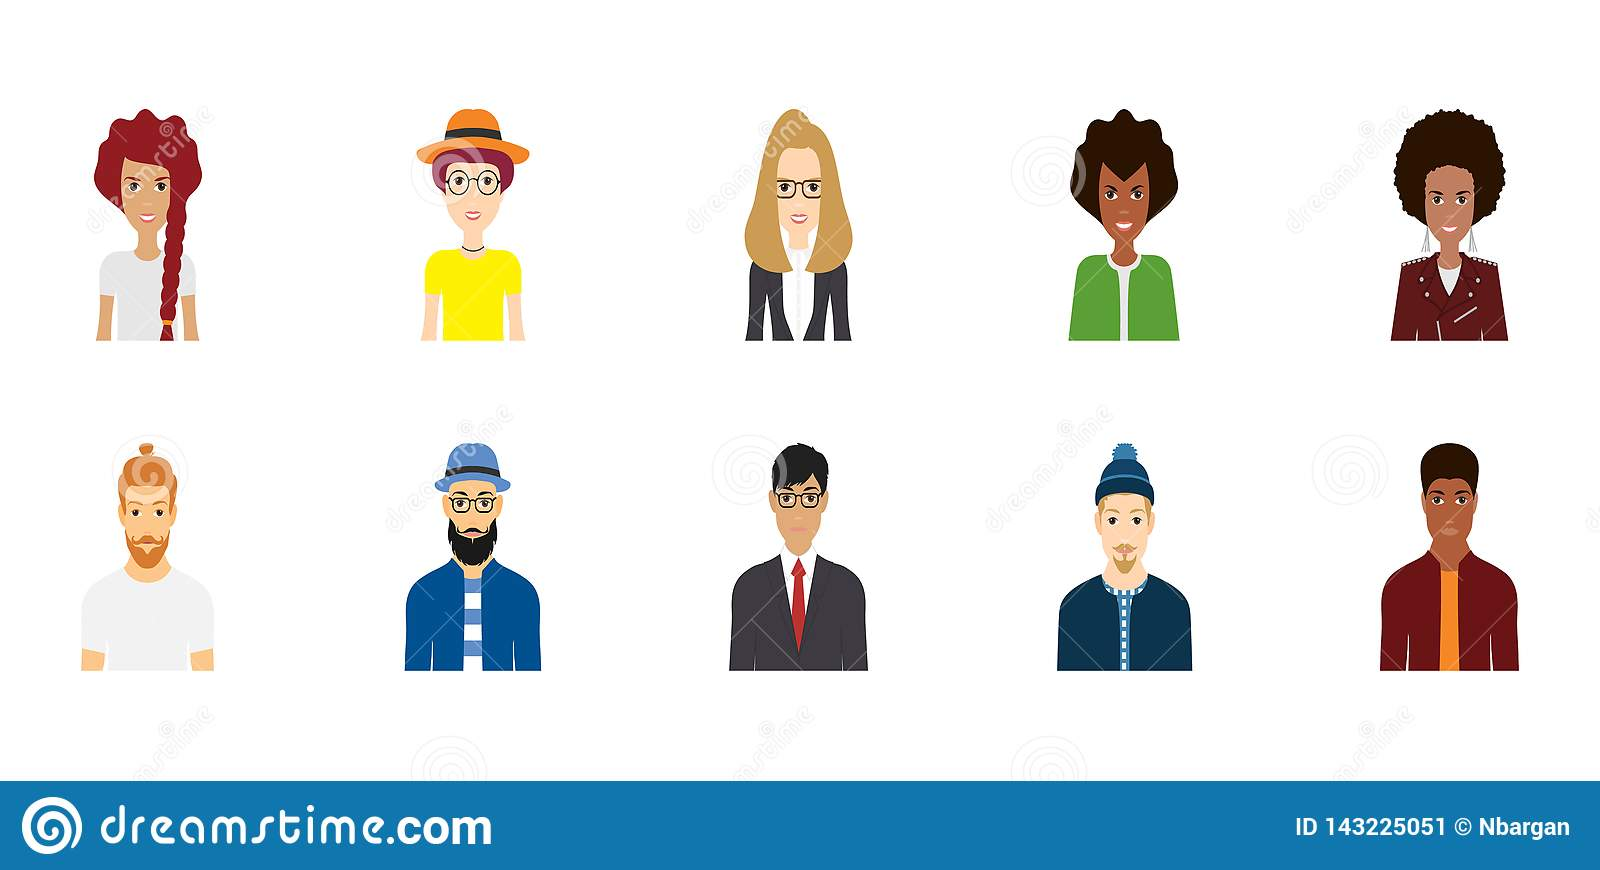 avatar character design colorful vector people avatar collection. vector design of